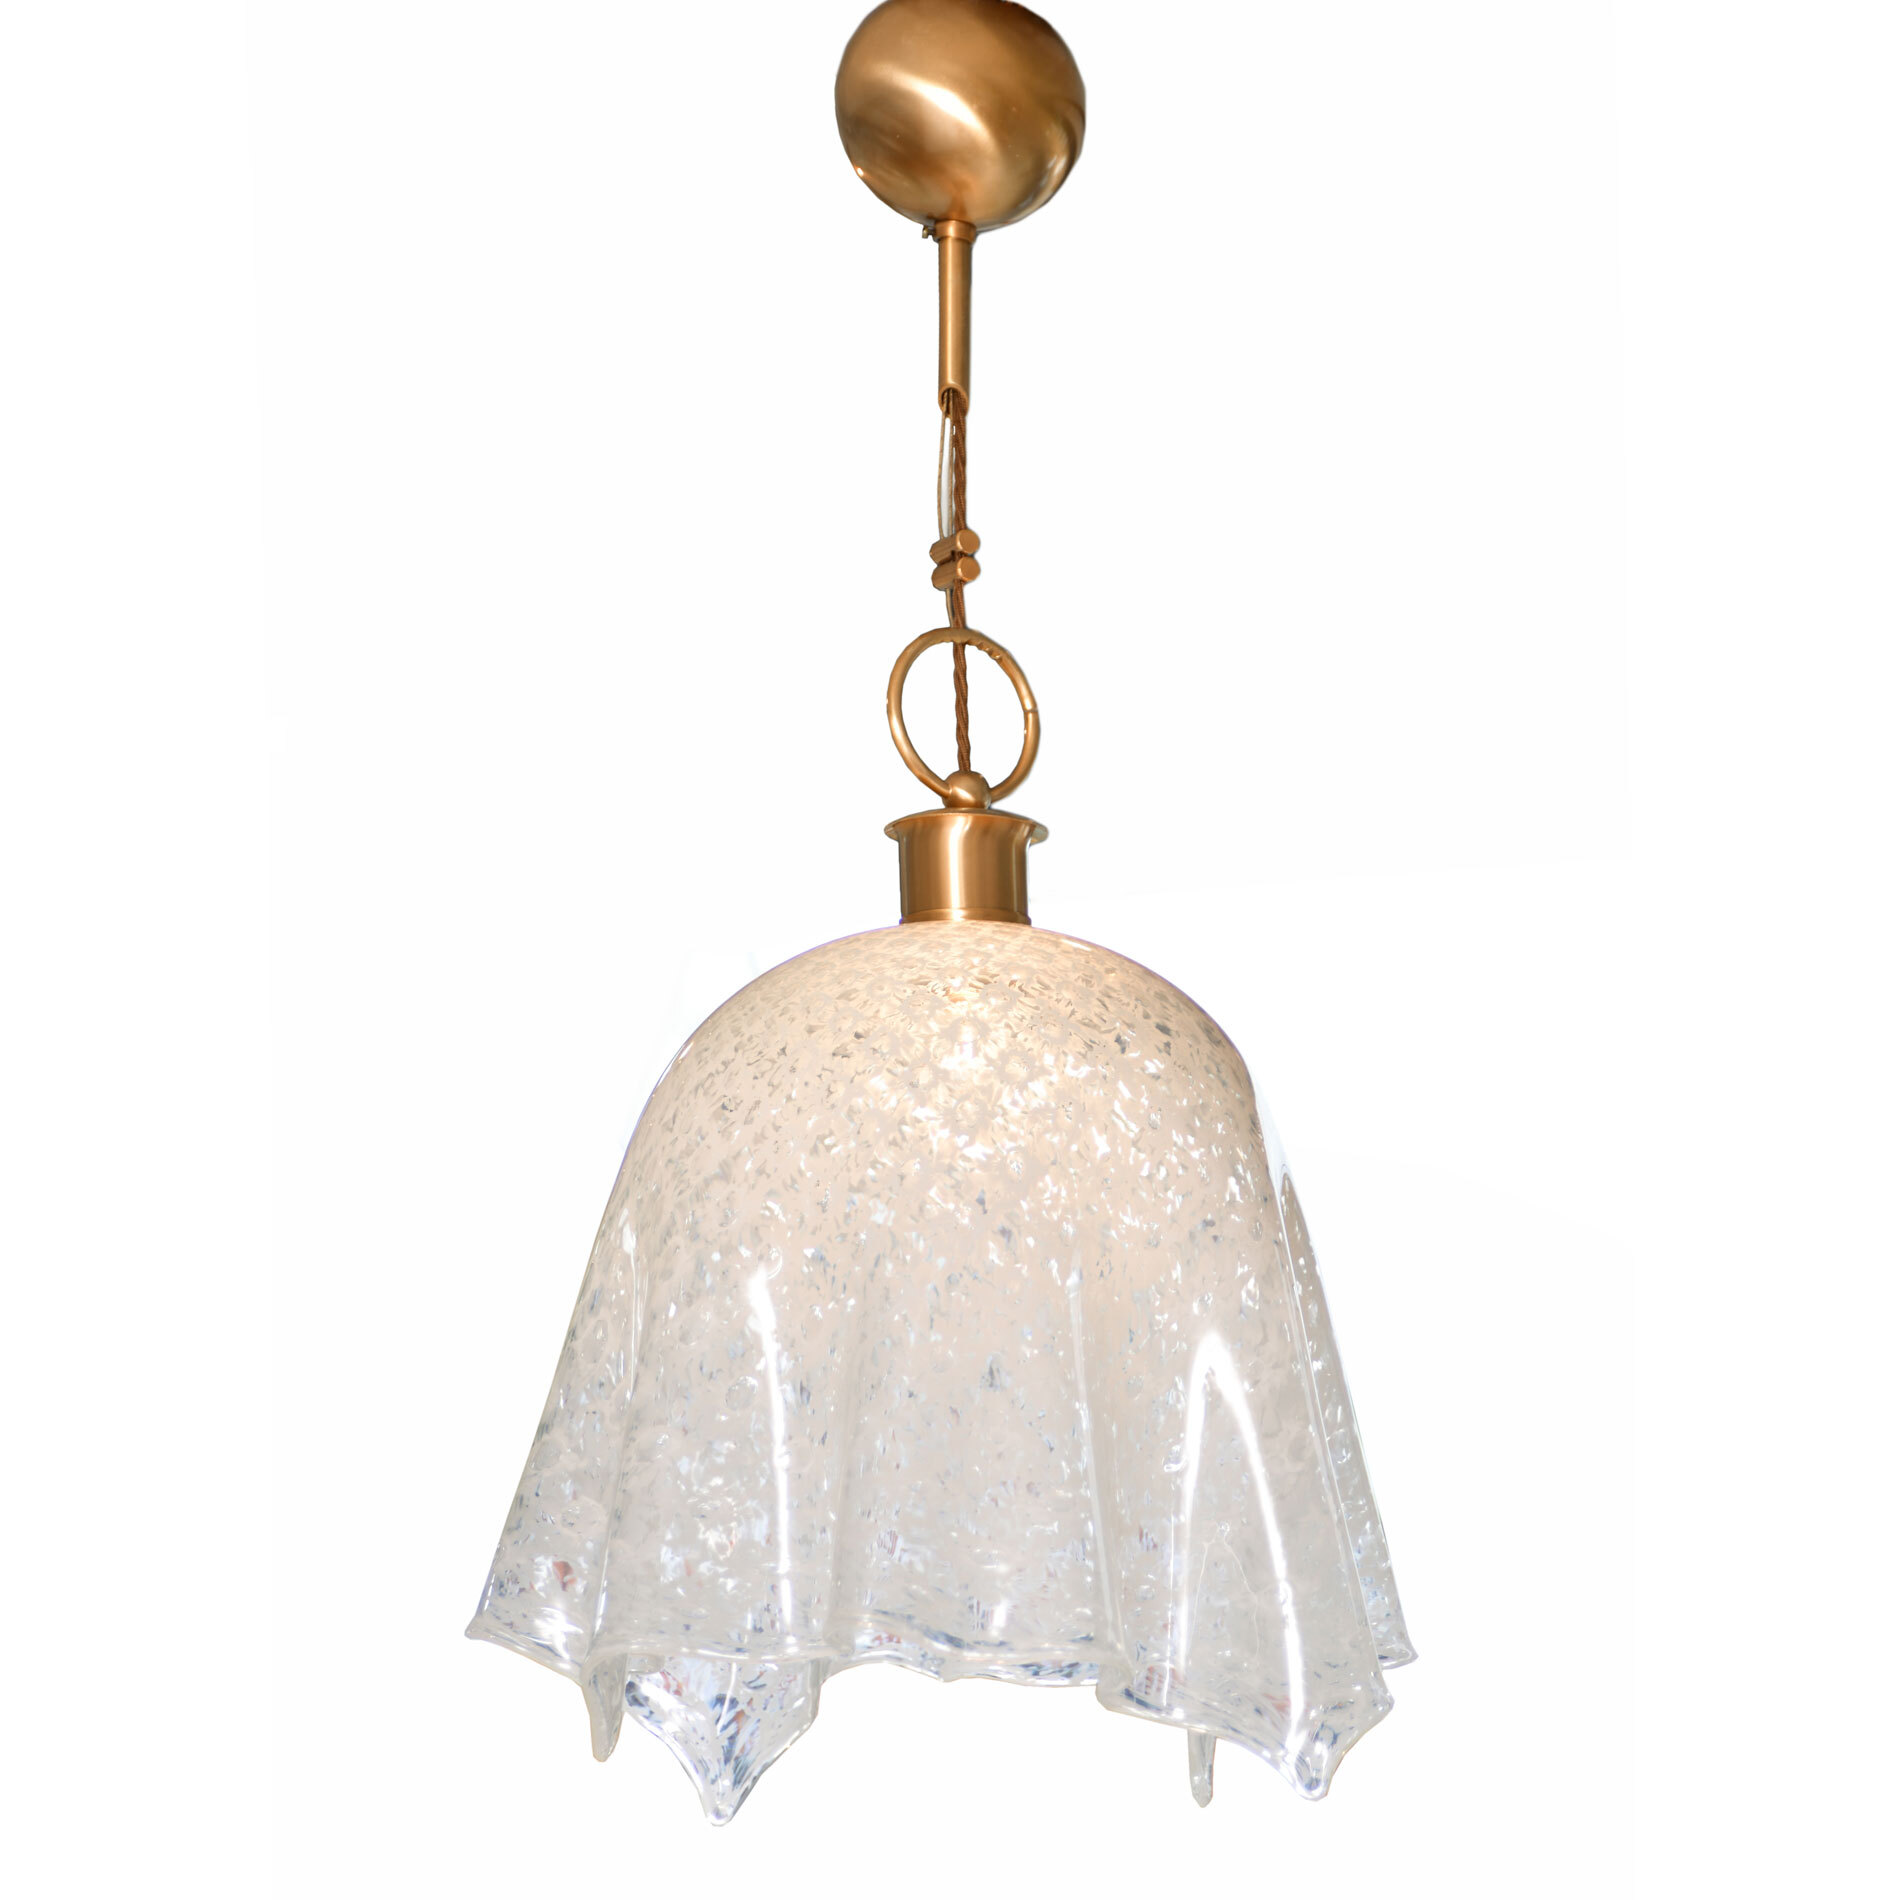 The image for Murano Handkerchief Chandelier 01